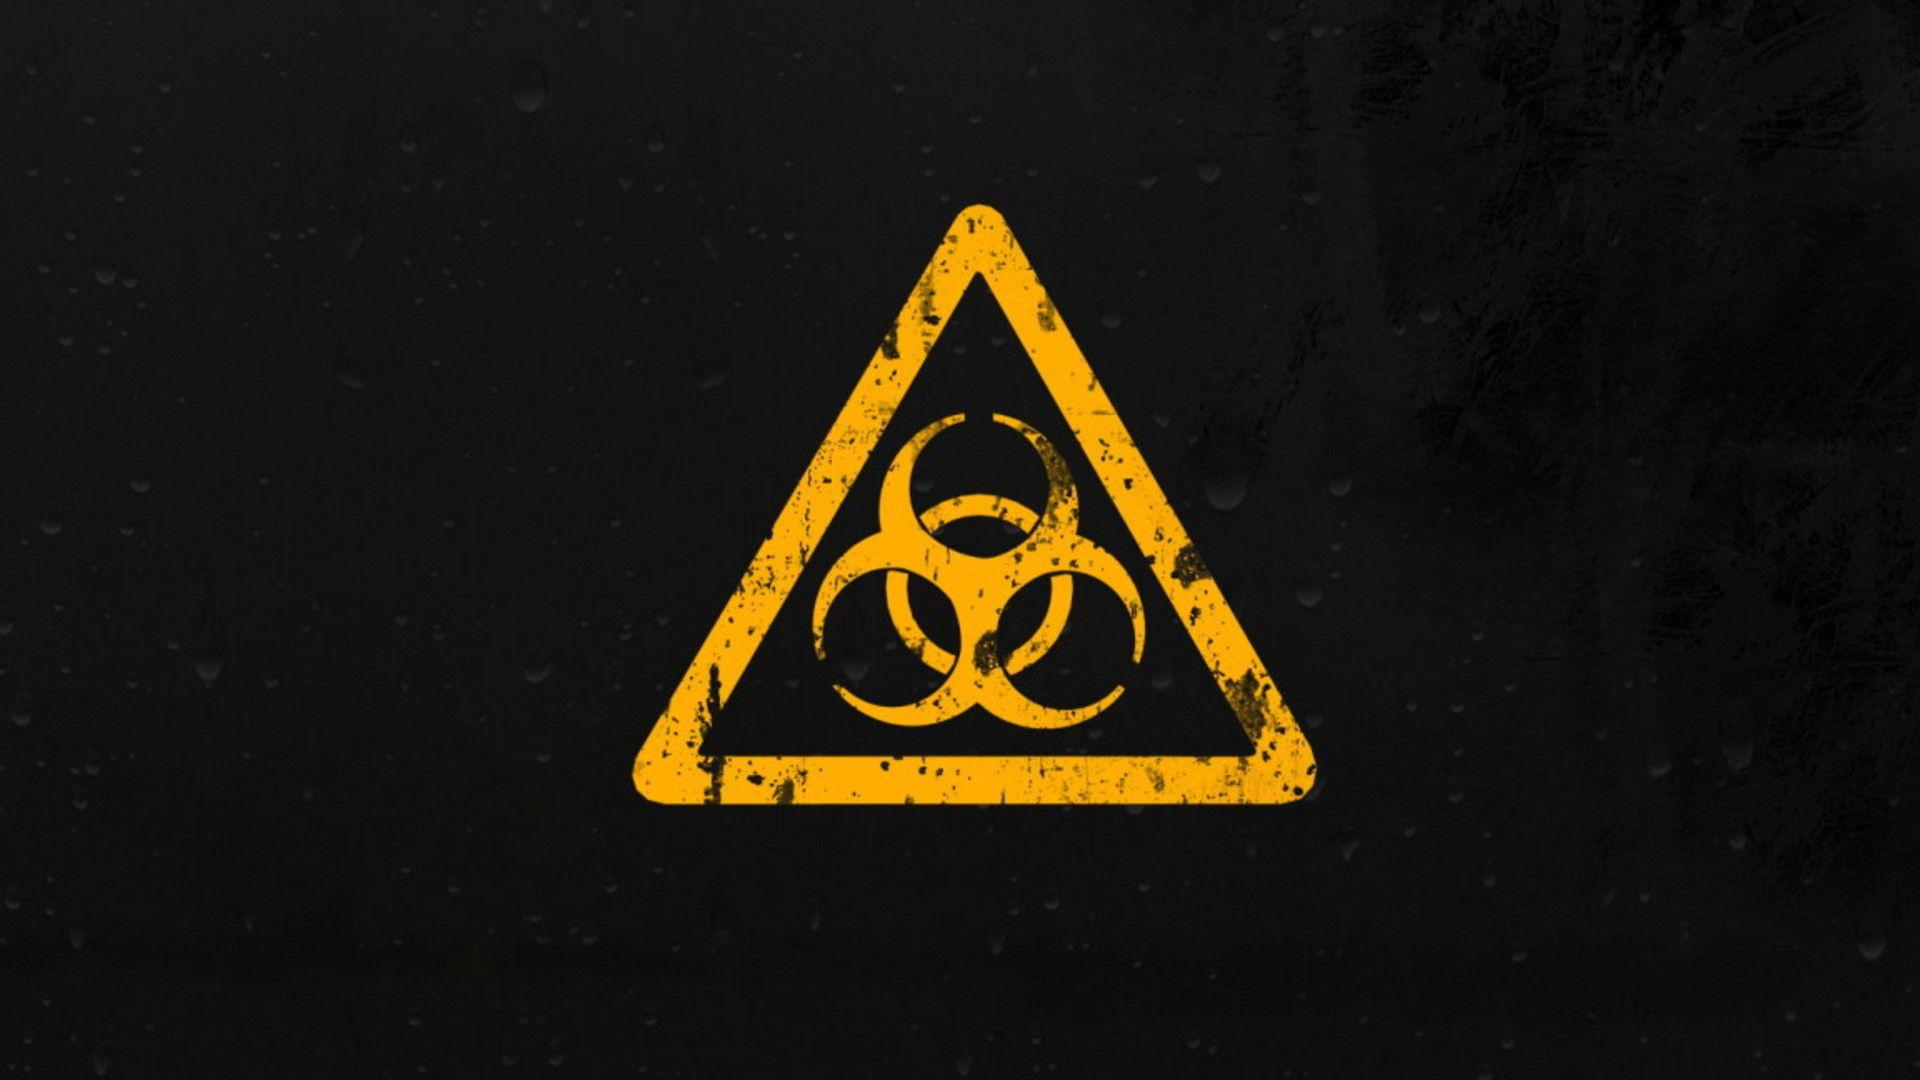 Biohazard Symbol Wallpapers - Wallpaper Cave